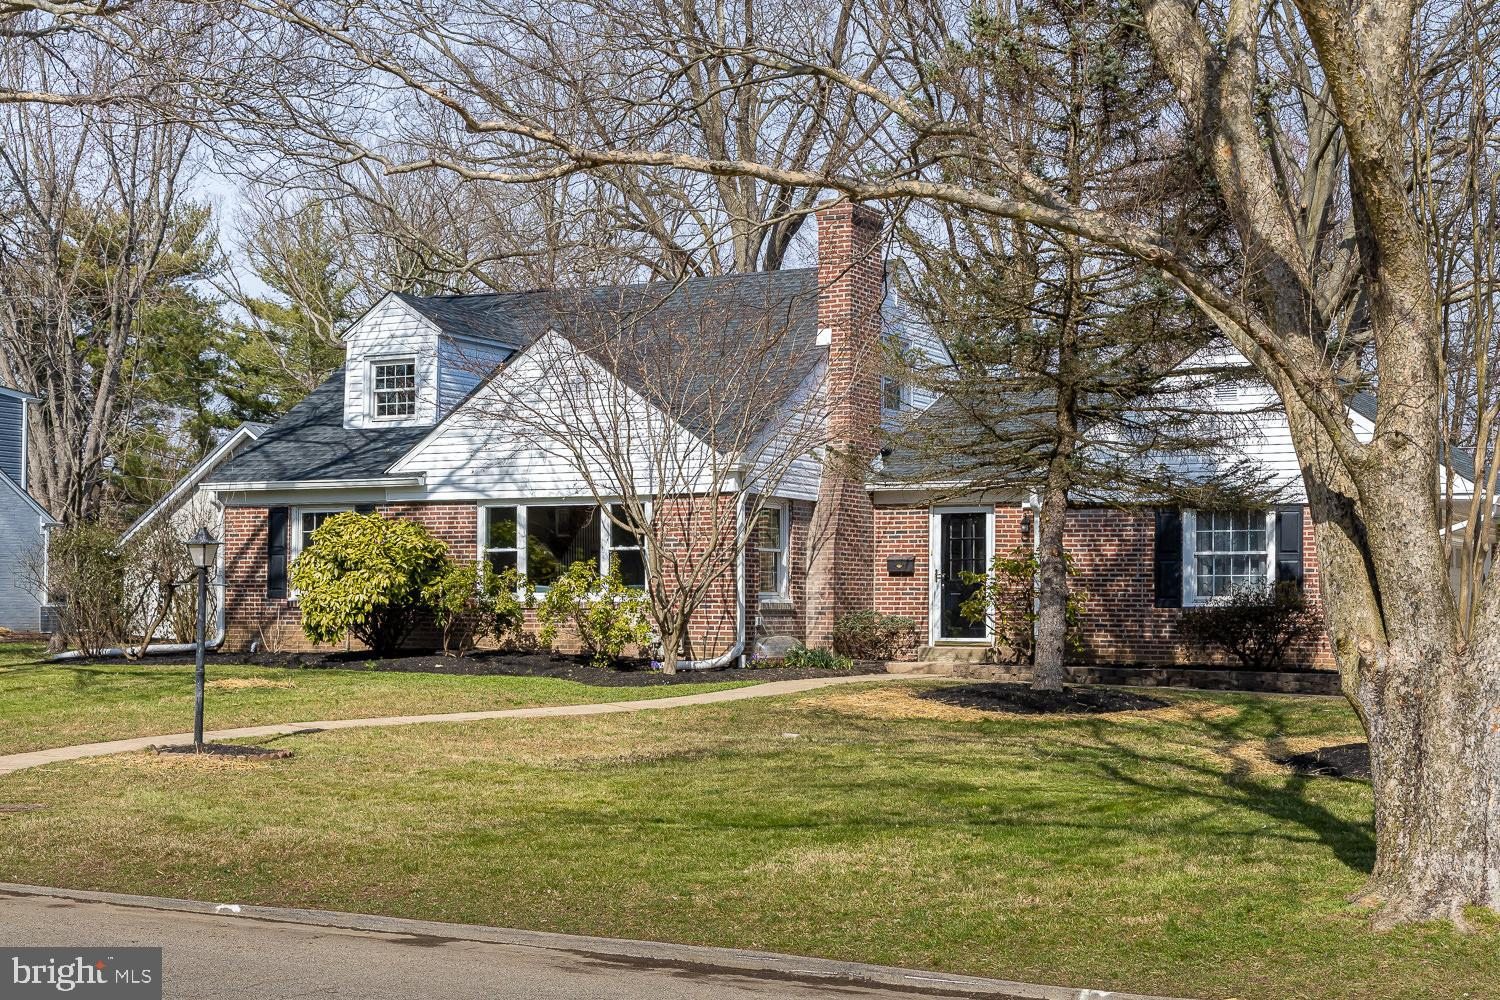 402 GOLFVIEW ROAD, WALLINGFORD, PA 19086